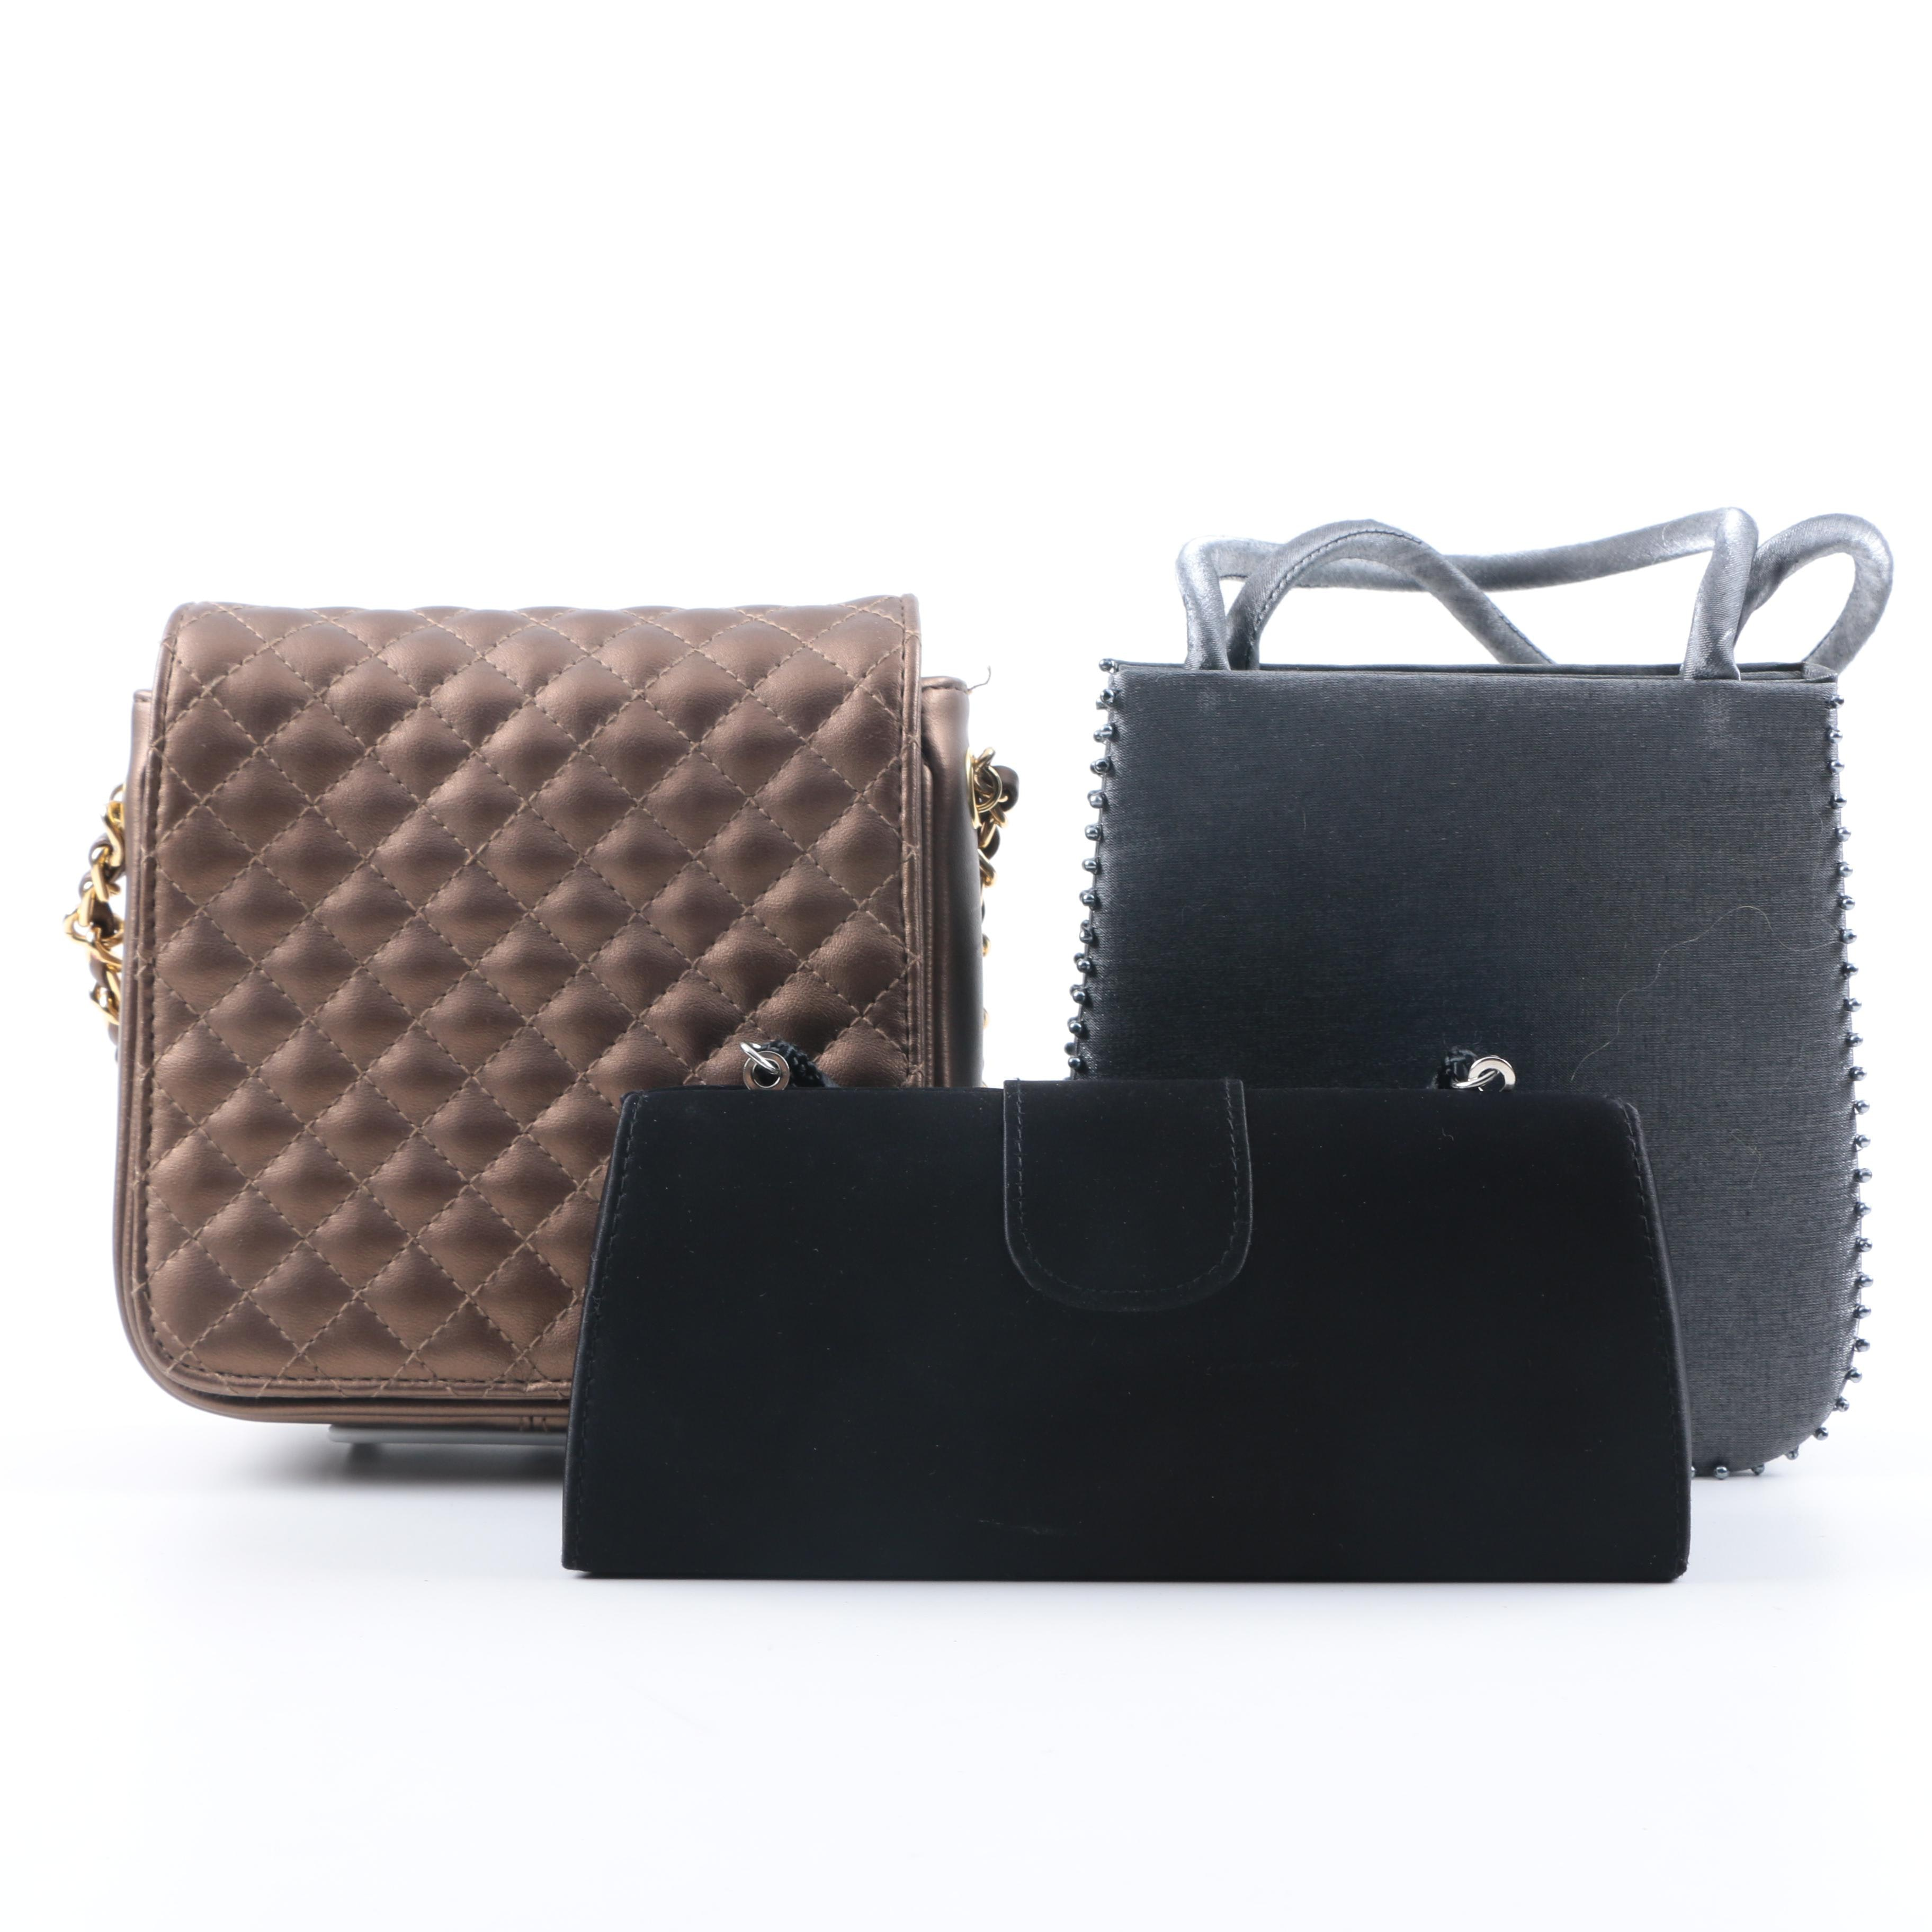 Handbags in Taupe, Grey, and Black